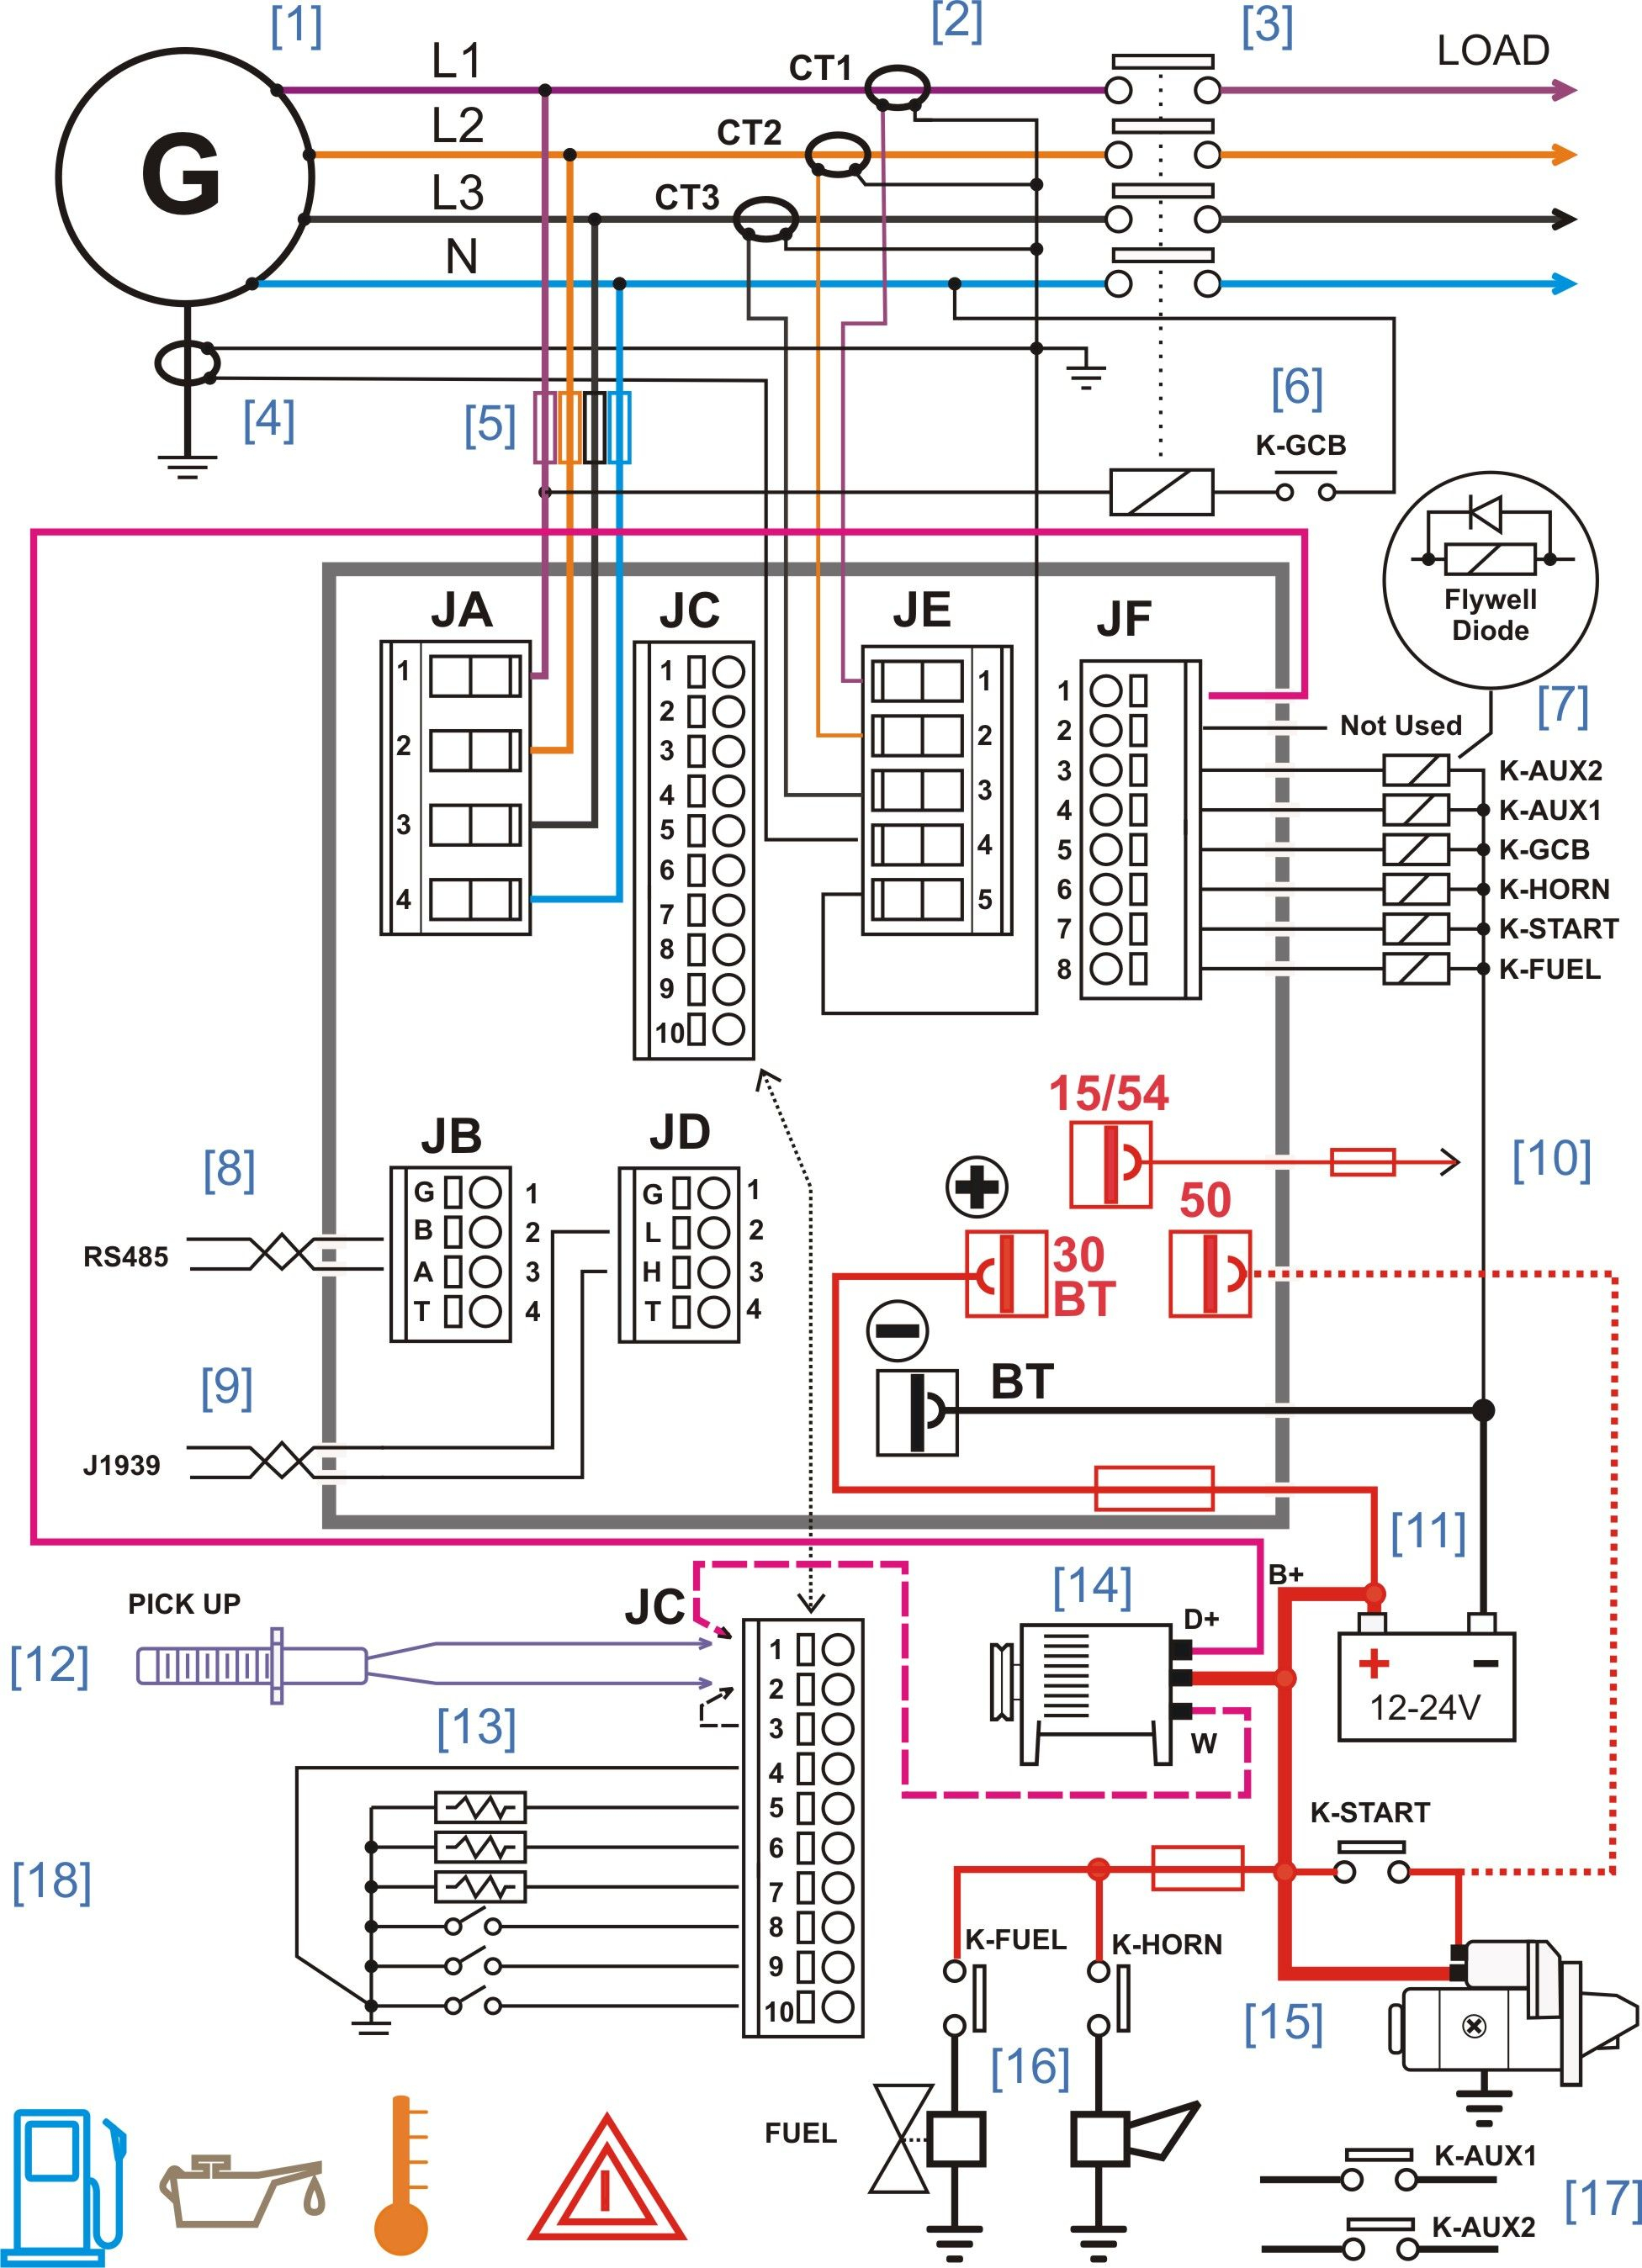 generator wiring diagram and electrical schematics pdf download rh faceitsalon com electrical control panel wiring diagram electrical control wiring diagram software